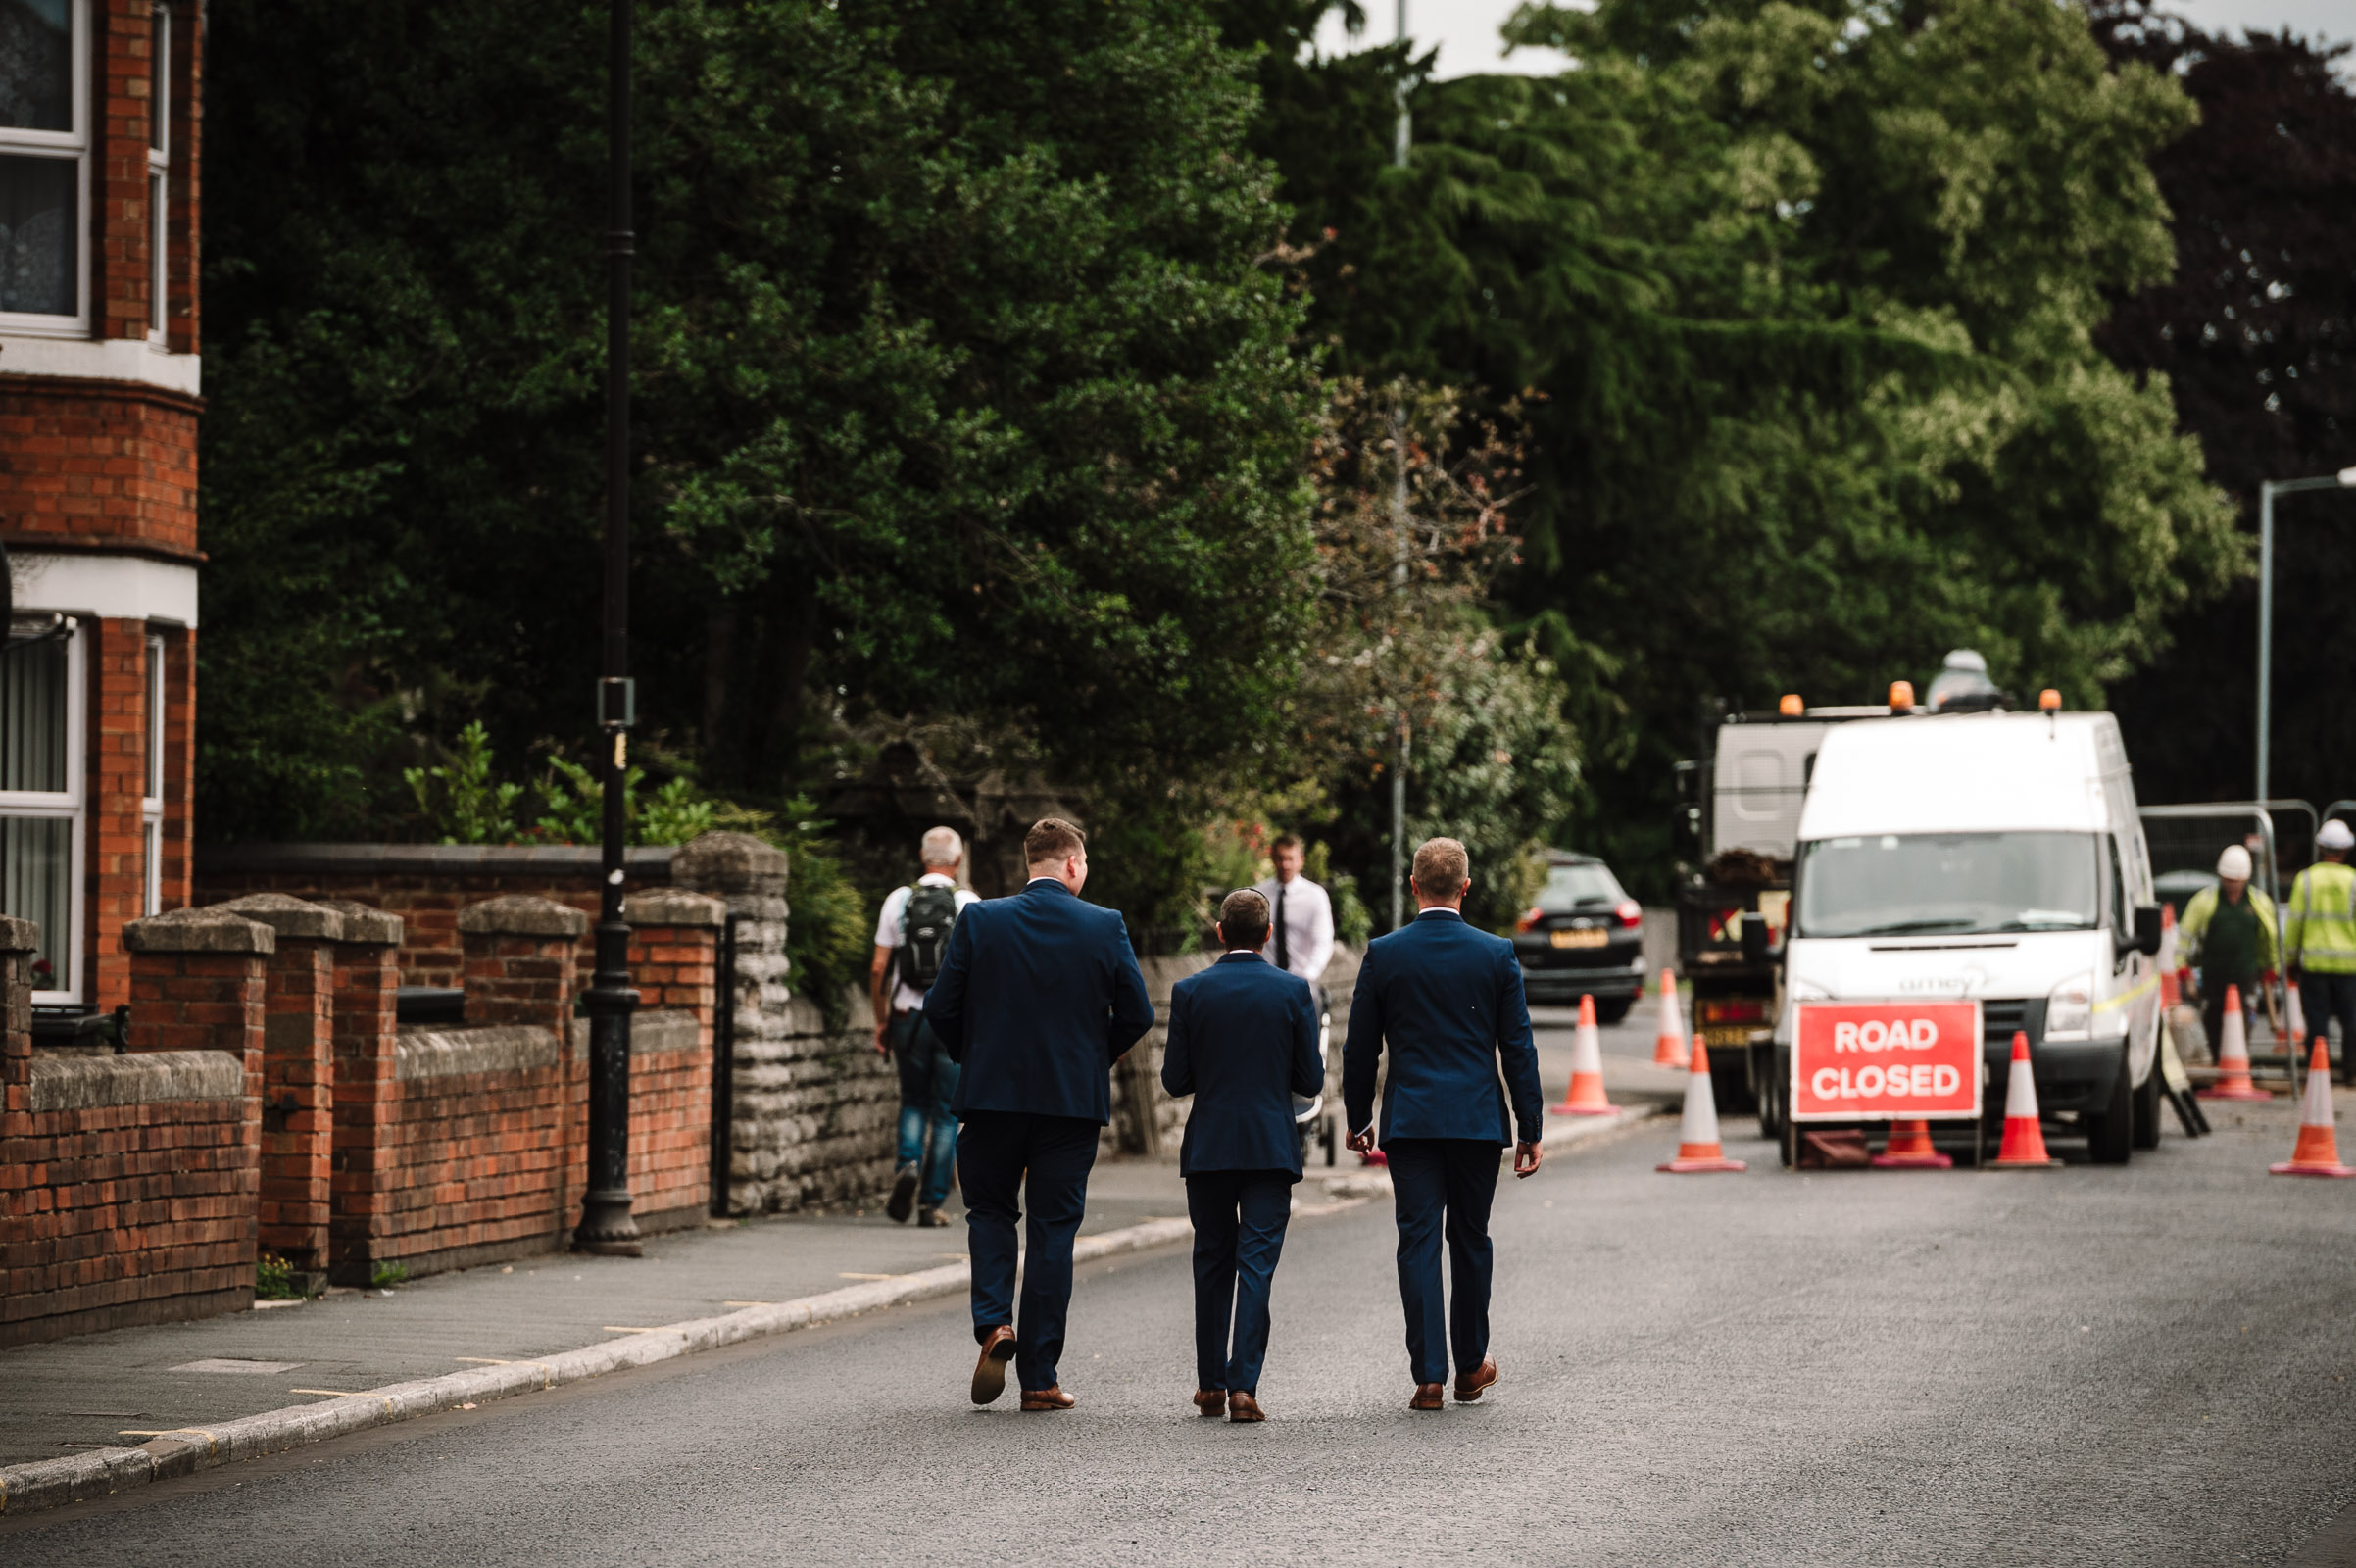 Groom and groomsmen walking down the road to church